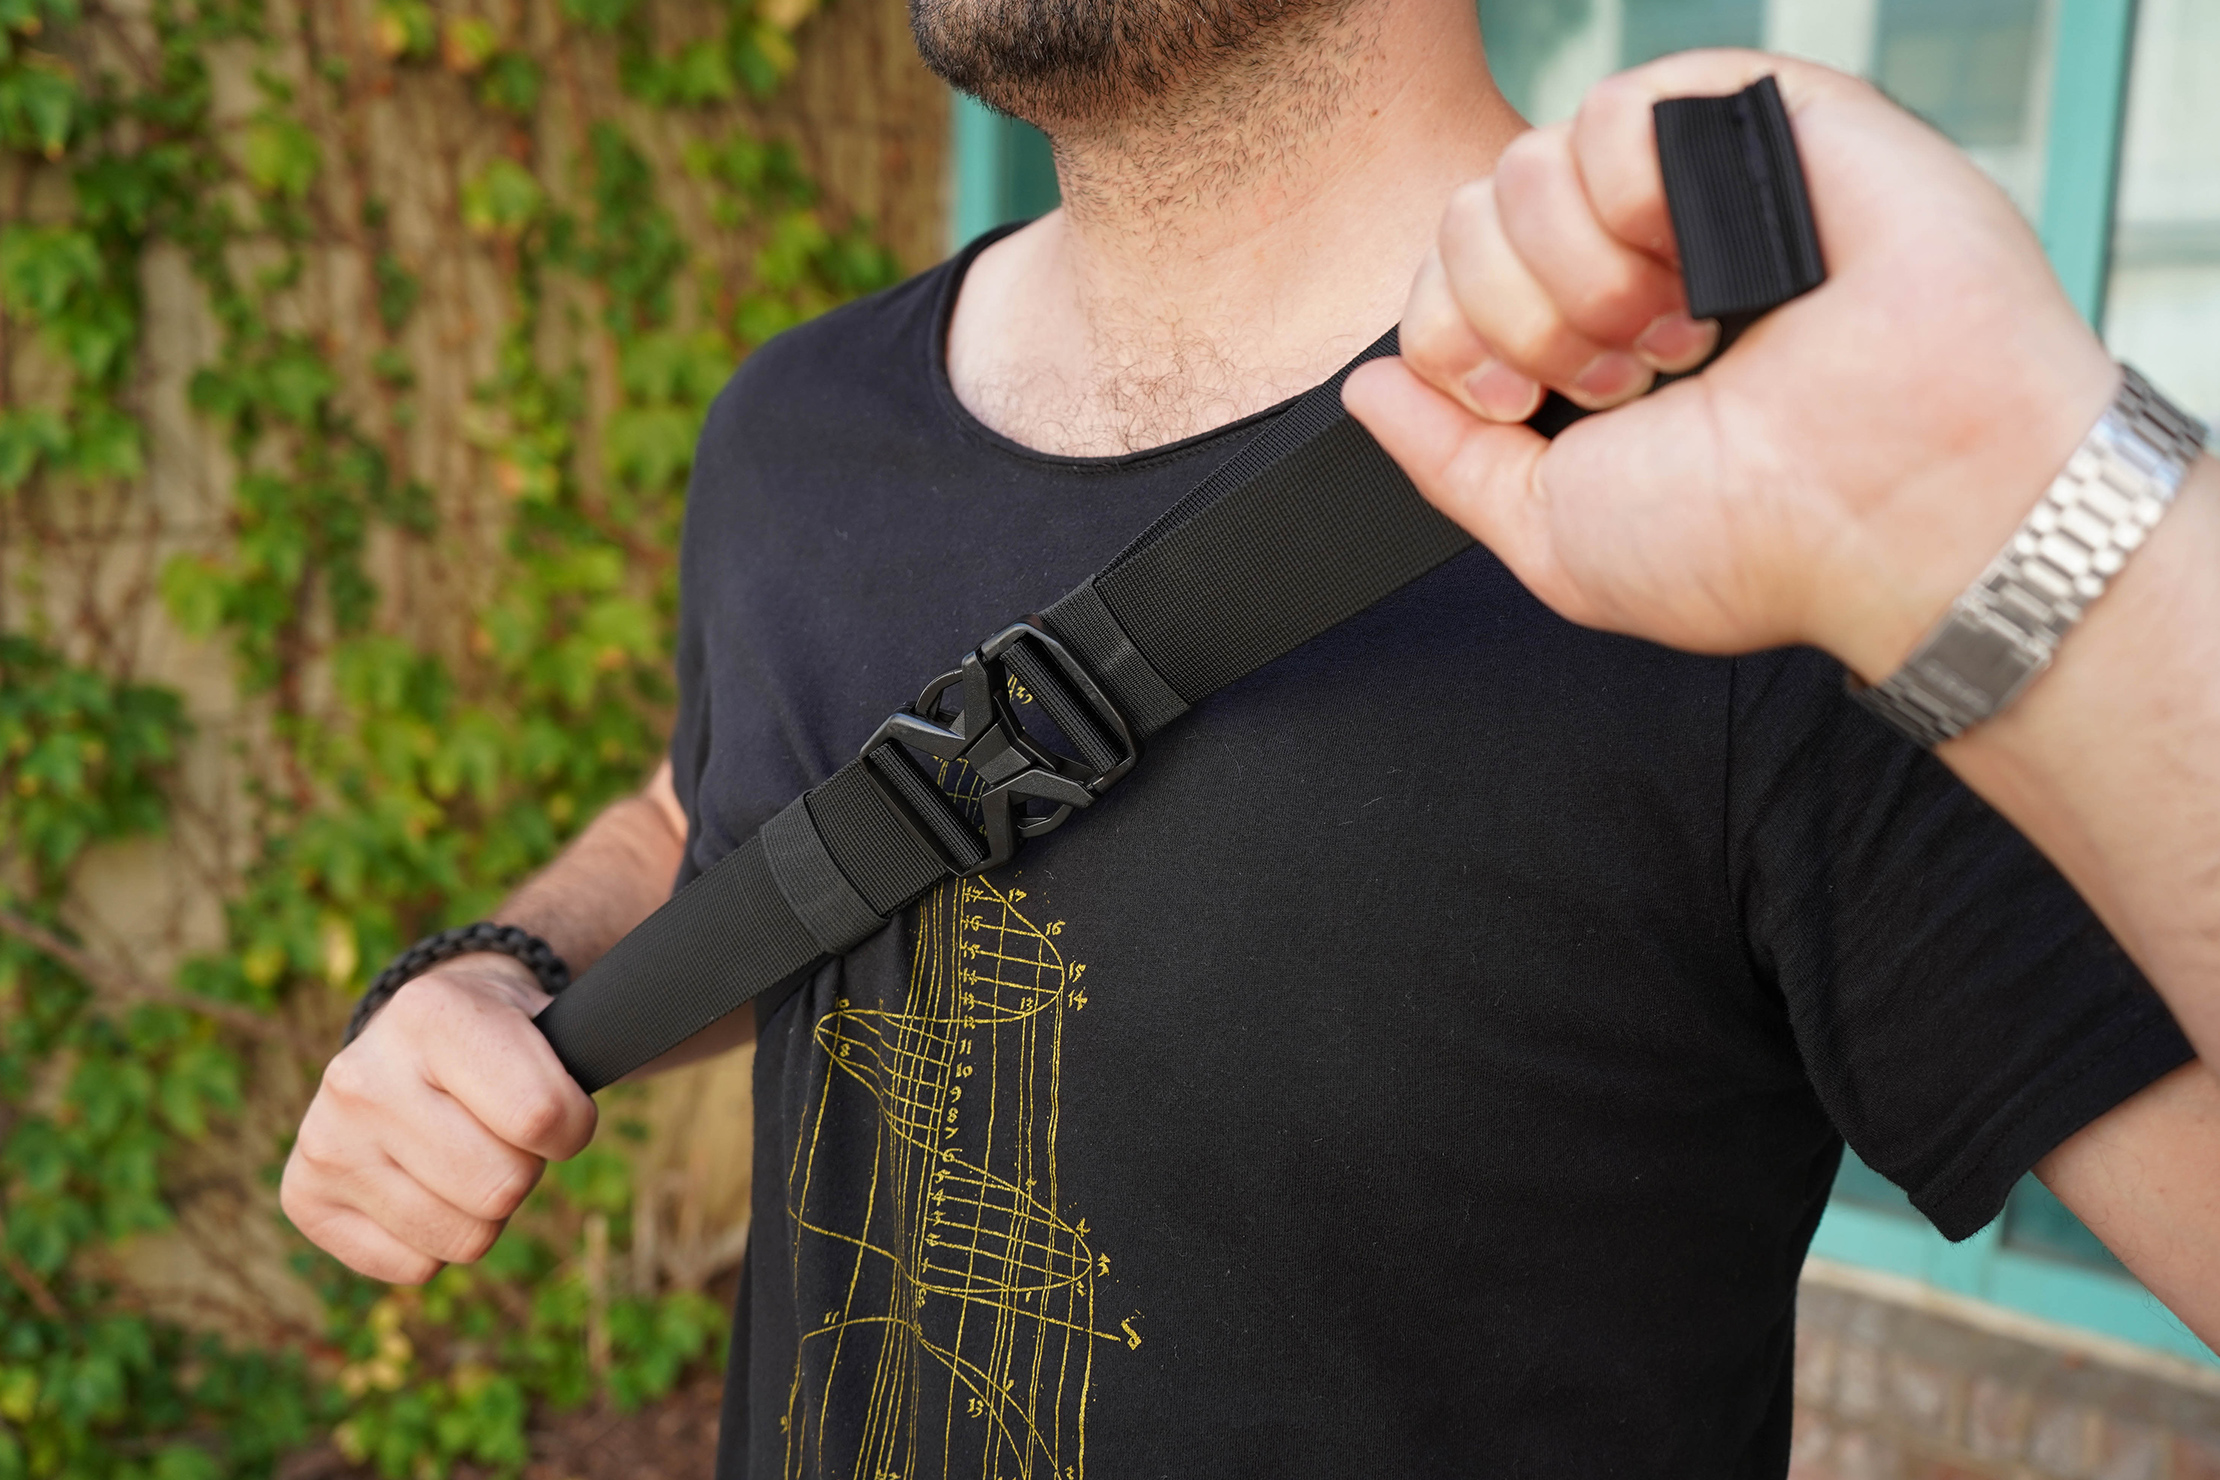 CODEOFBELL X-POD Chest Strap Adjustment